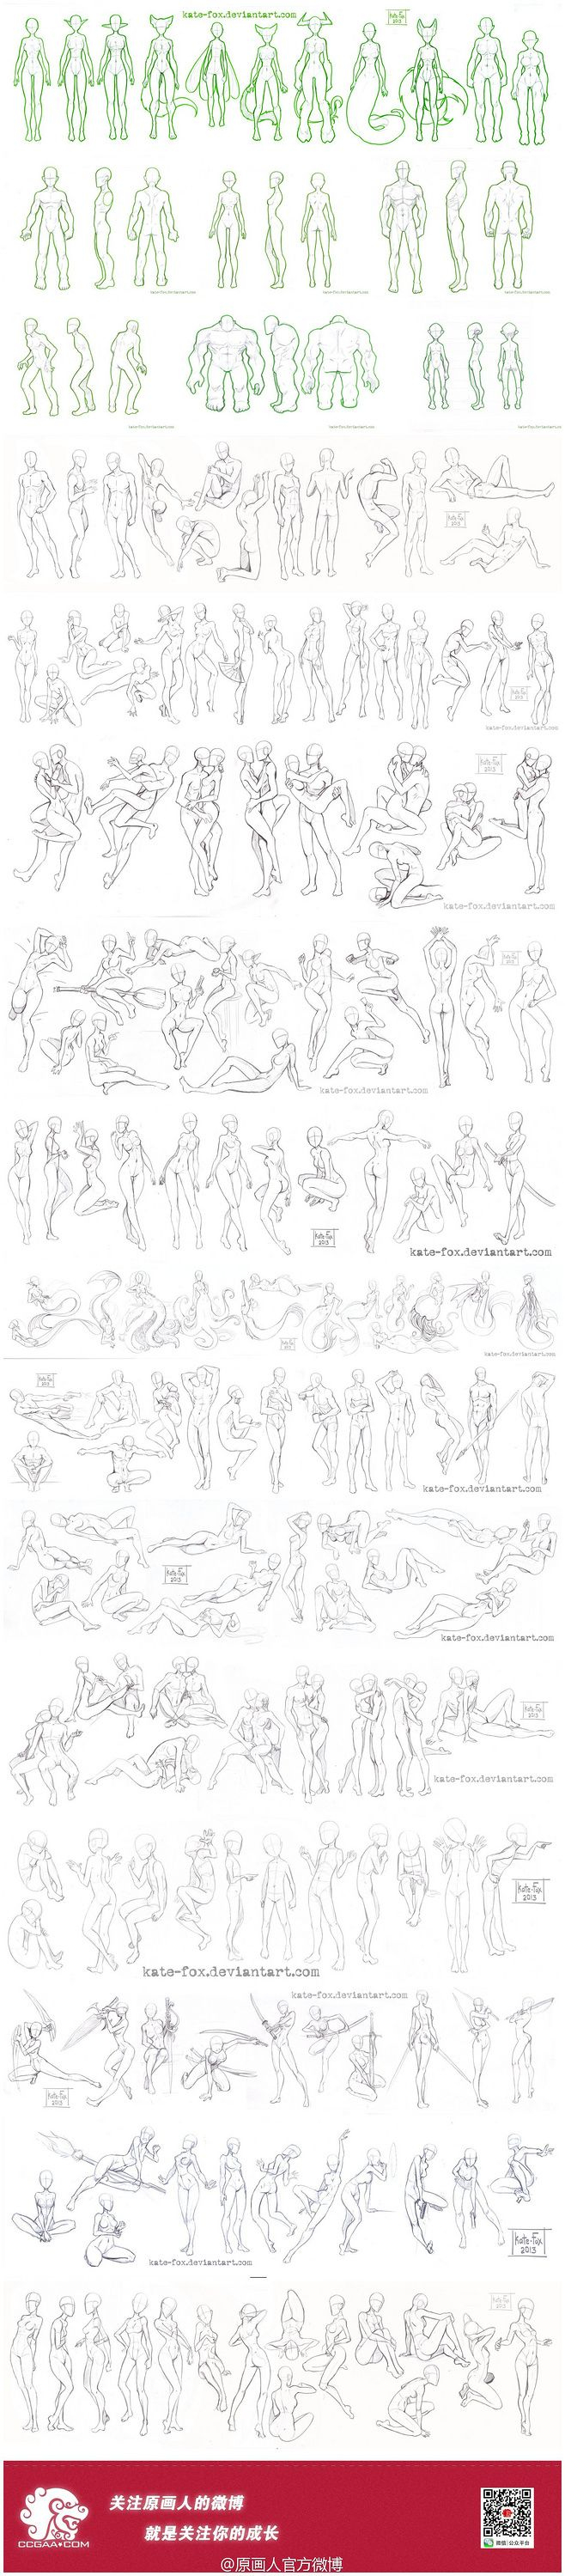 even more of them #models #bodies #templates